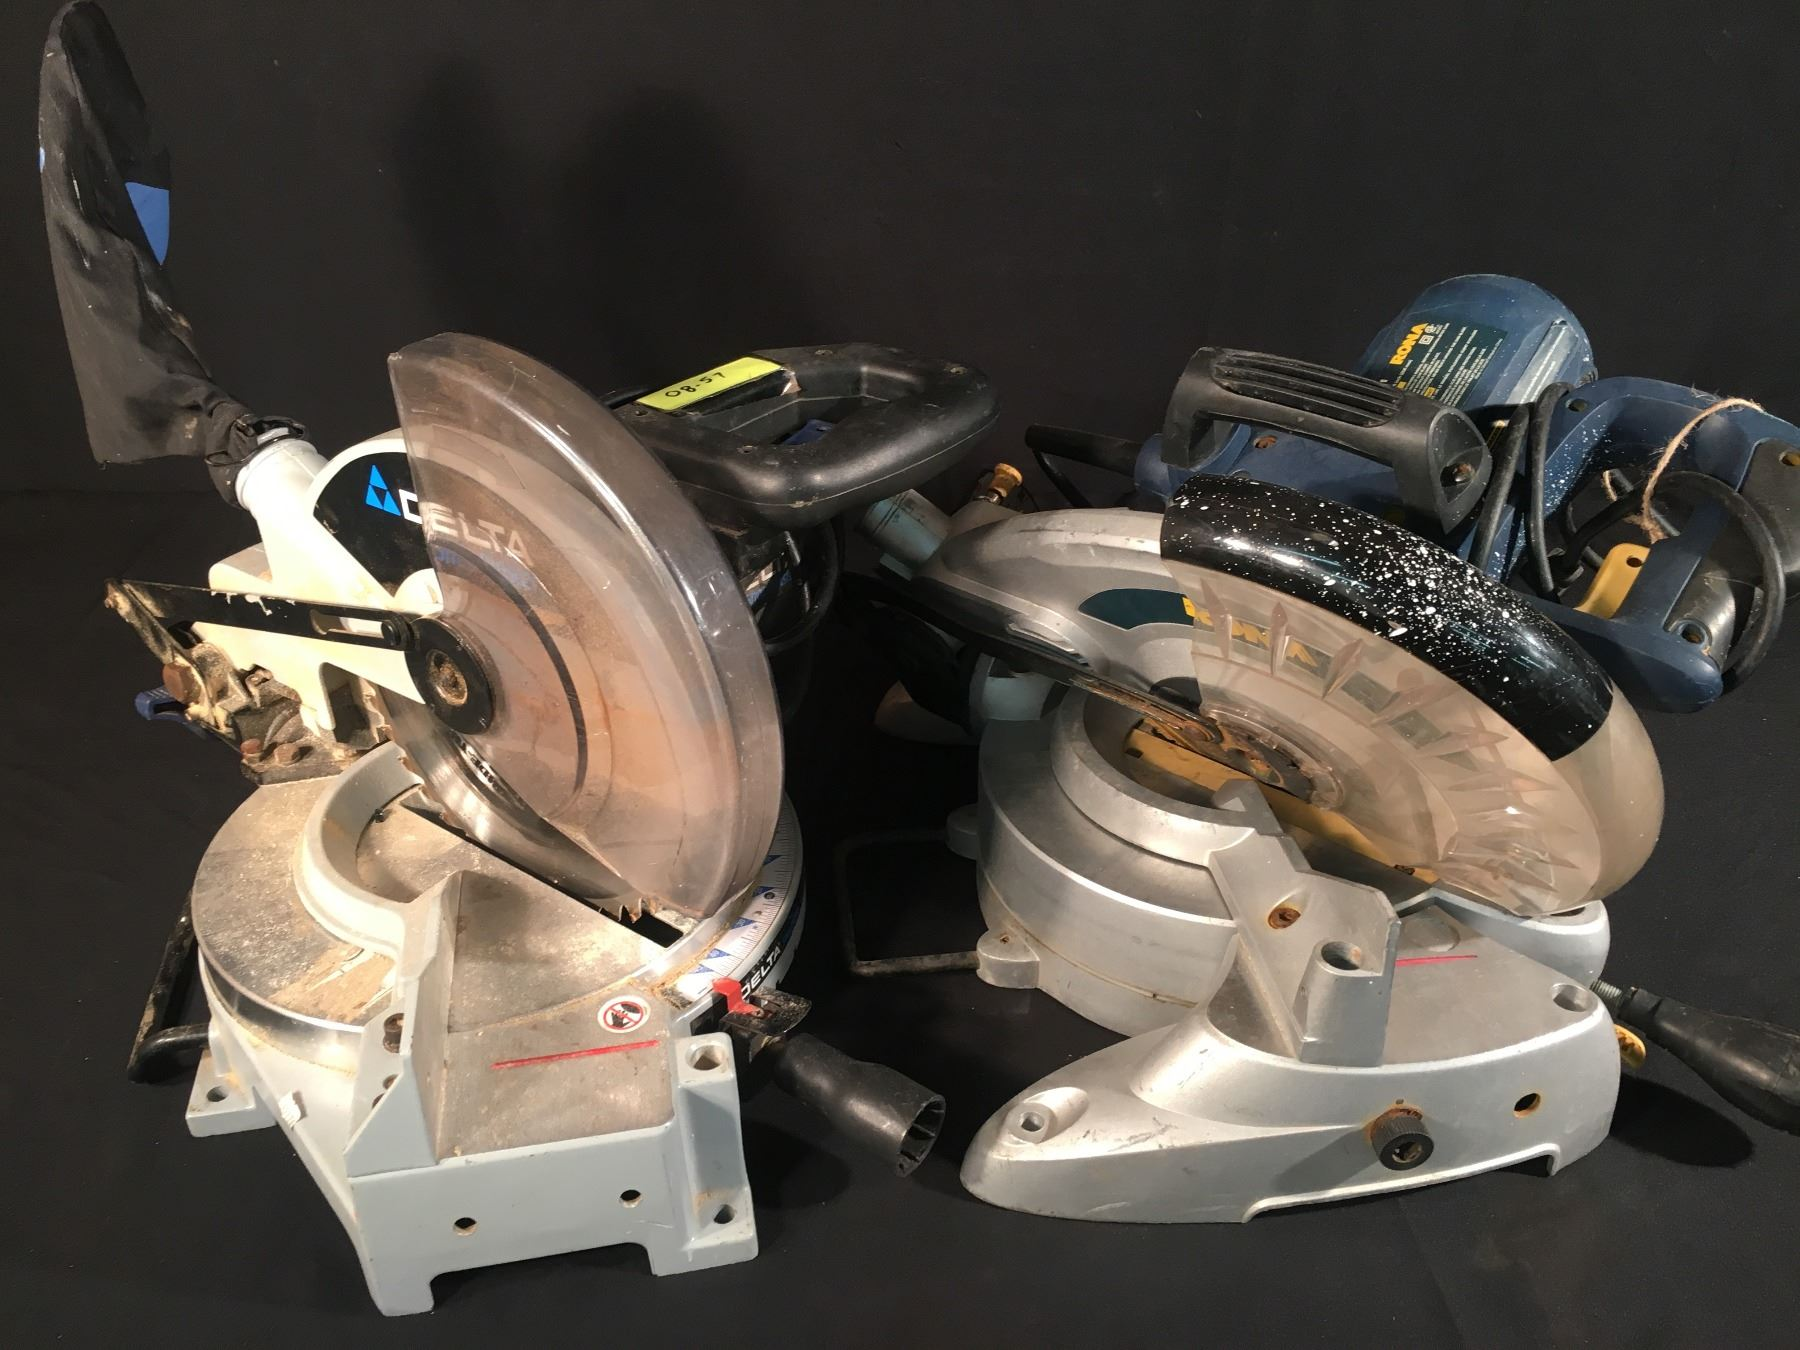 RONA 10 INCH MITRE SAW & DELTA 10 INCH MITRE SAW - Test Site